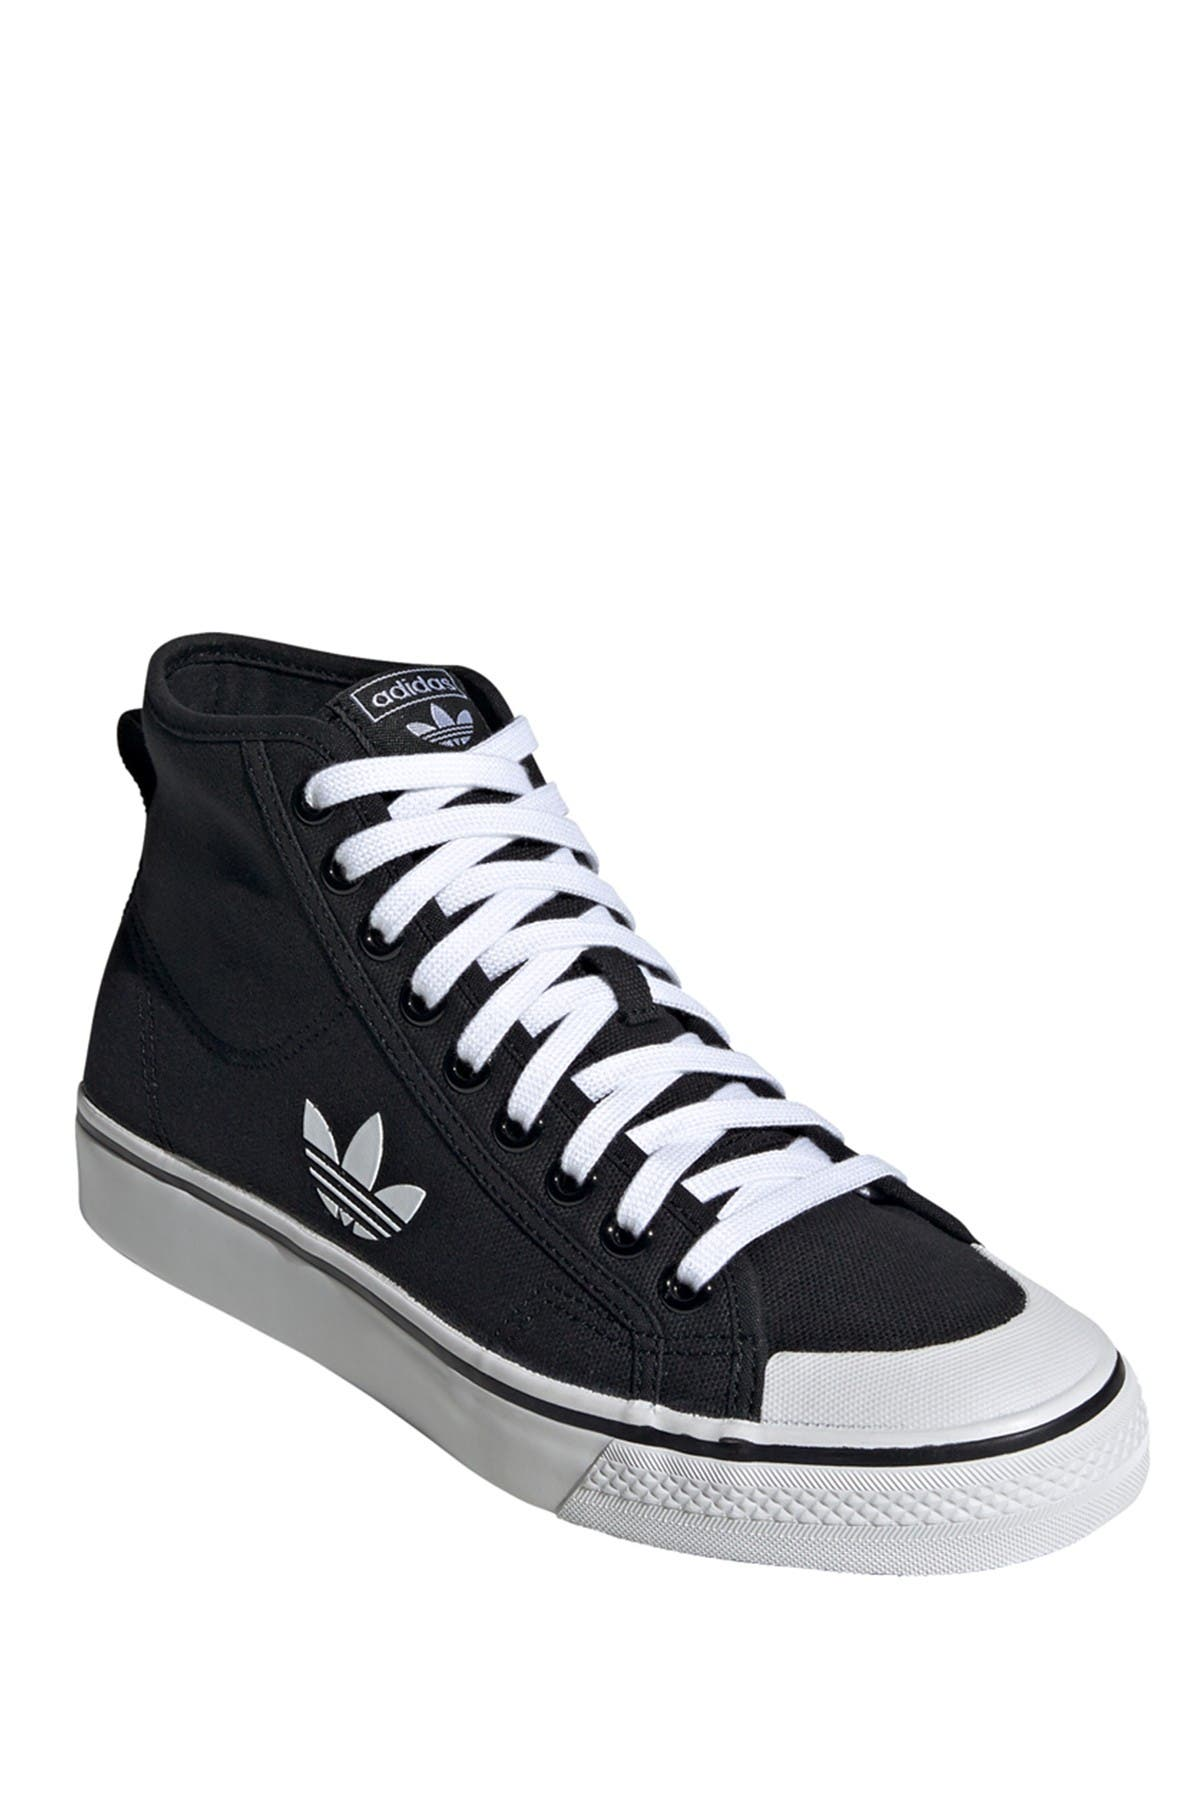 Image of adidas Nizza Lace-Up High Top Sneaker